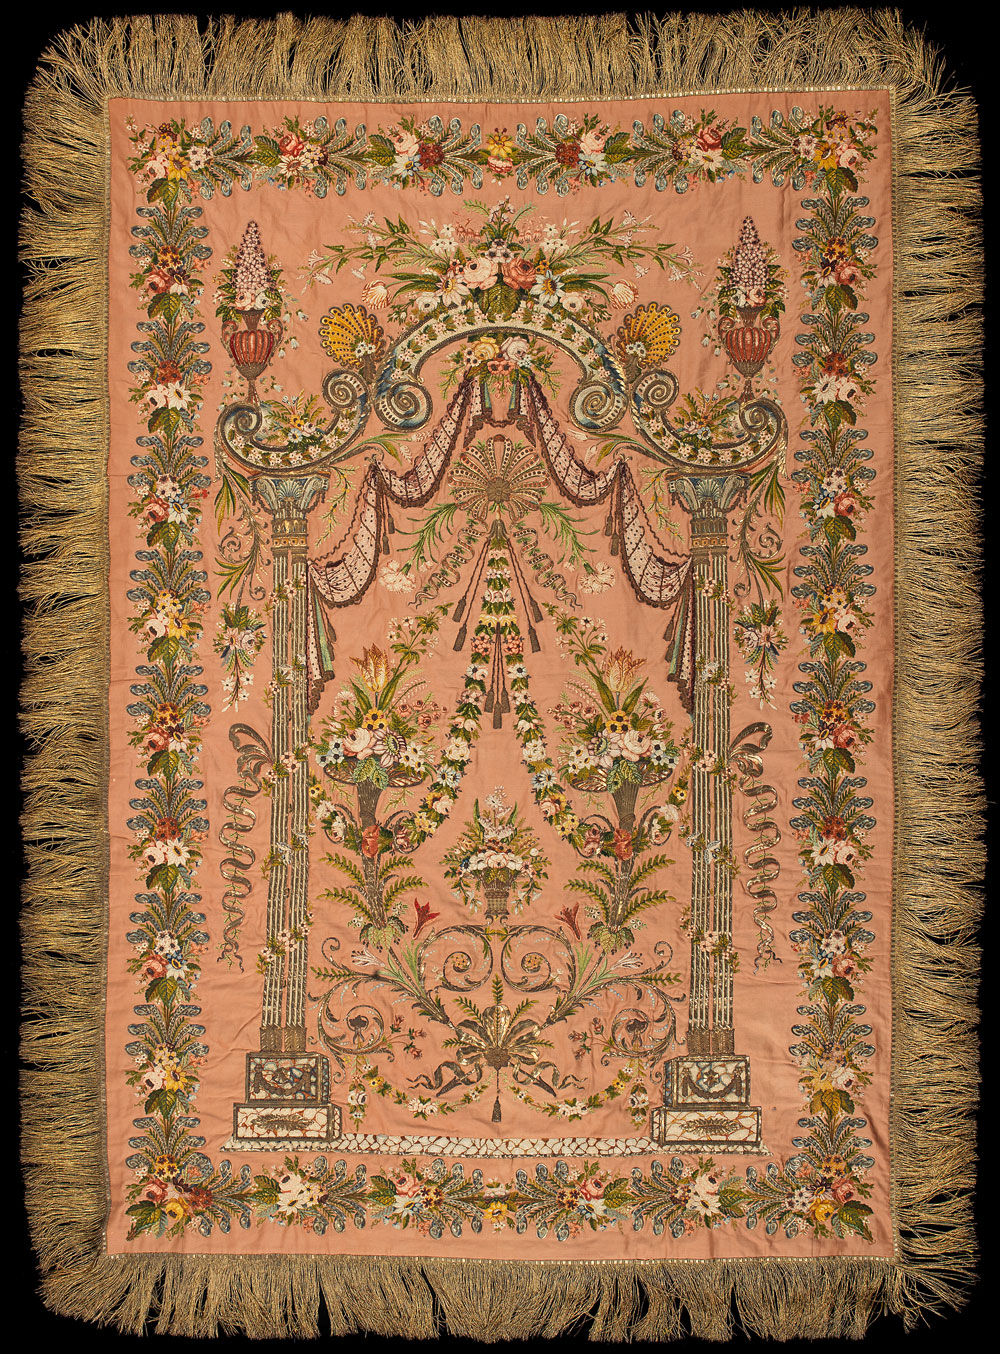 An-Ottoman-silver-thread-embroidered-mihrab-panel-from-the-collection-of-Sultan-Mehmet-VI-Turkey